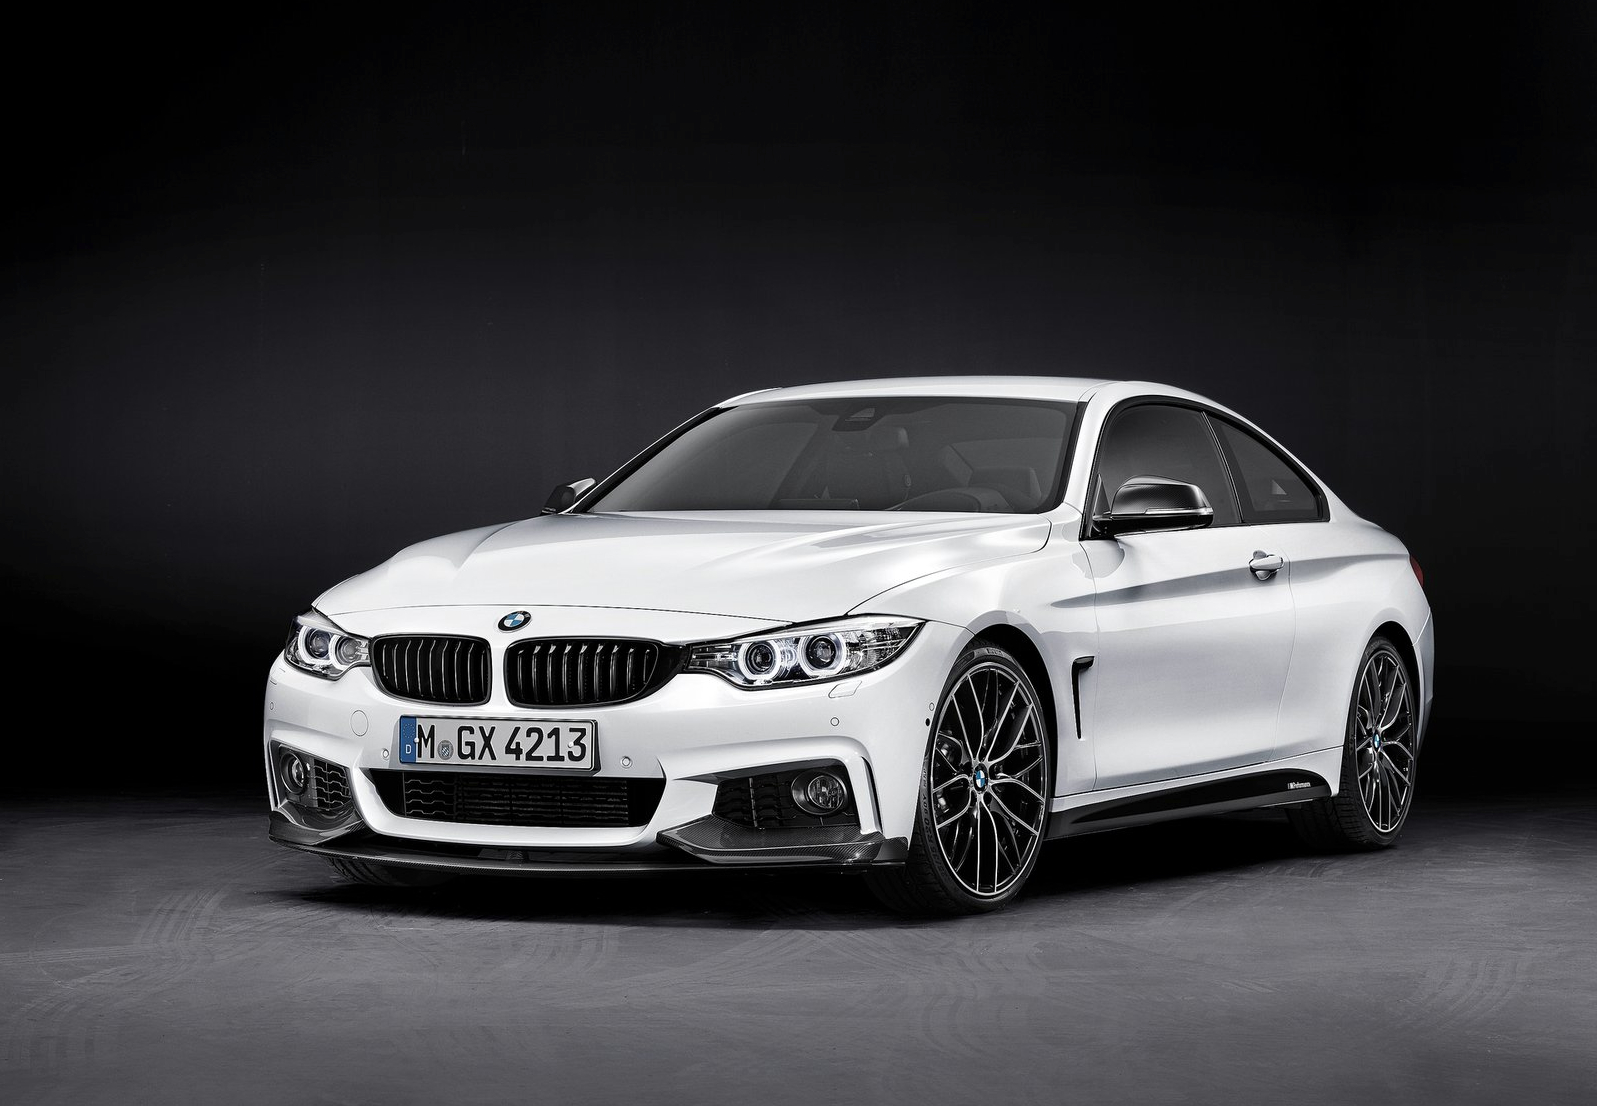 Two BMW Models Finalists For World Car Awards Autoevolution - 2014 bmw models